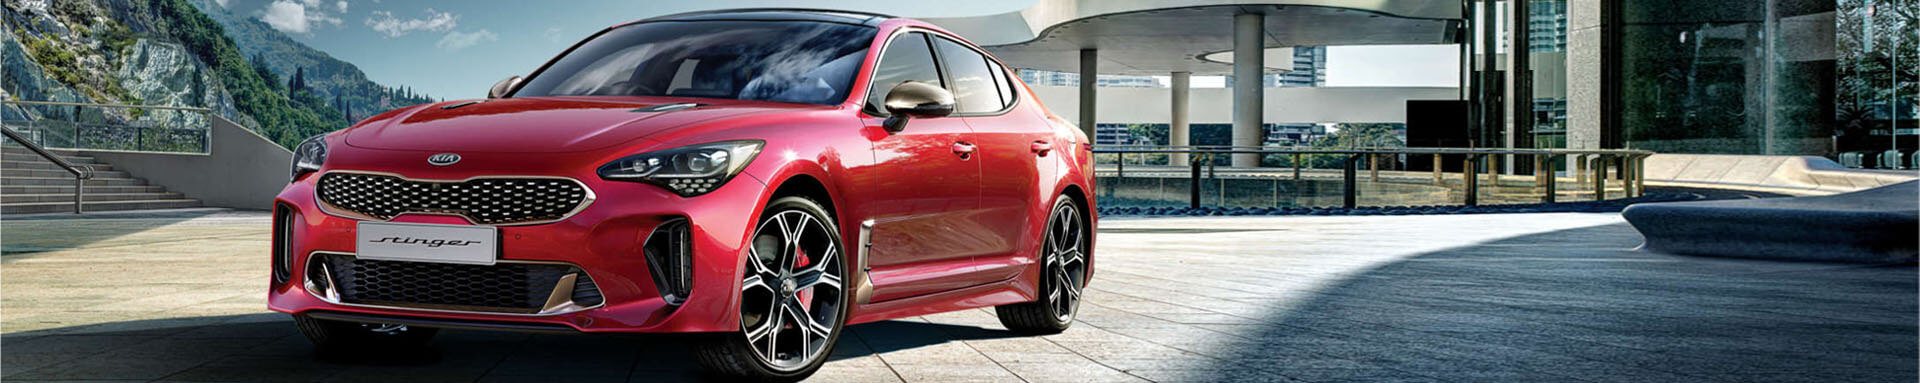 Great Western KIA Stinger